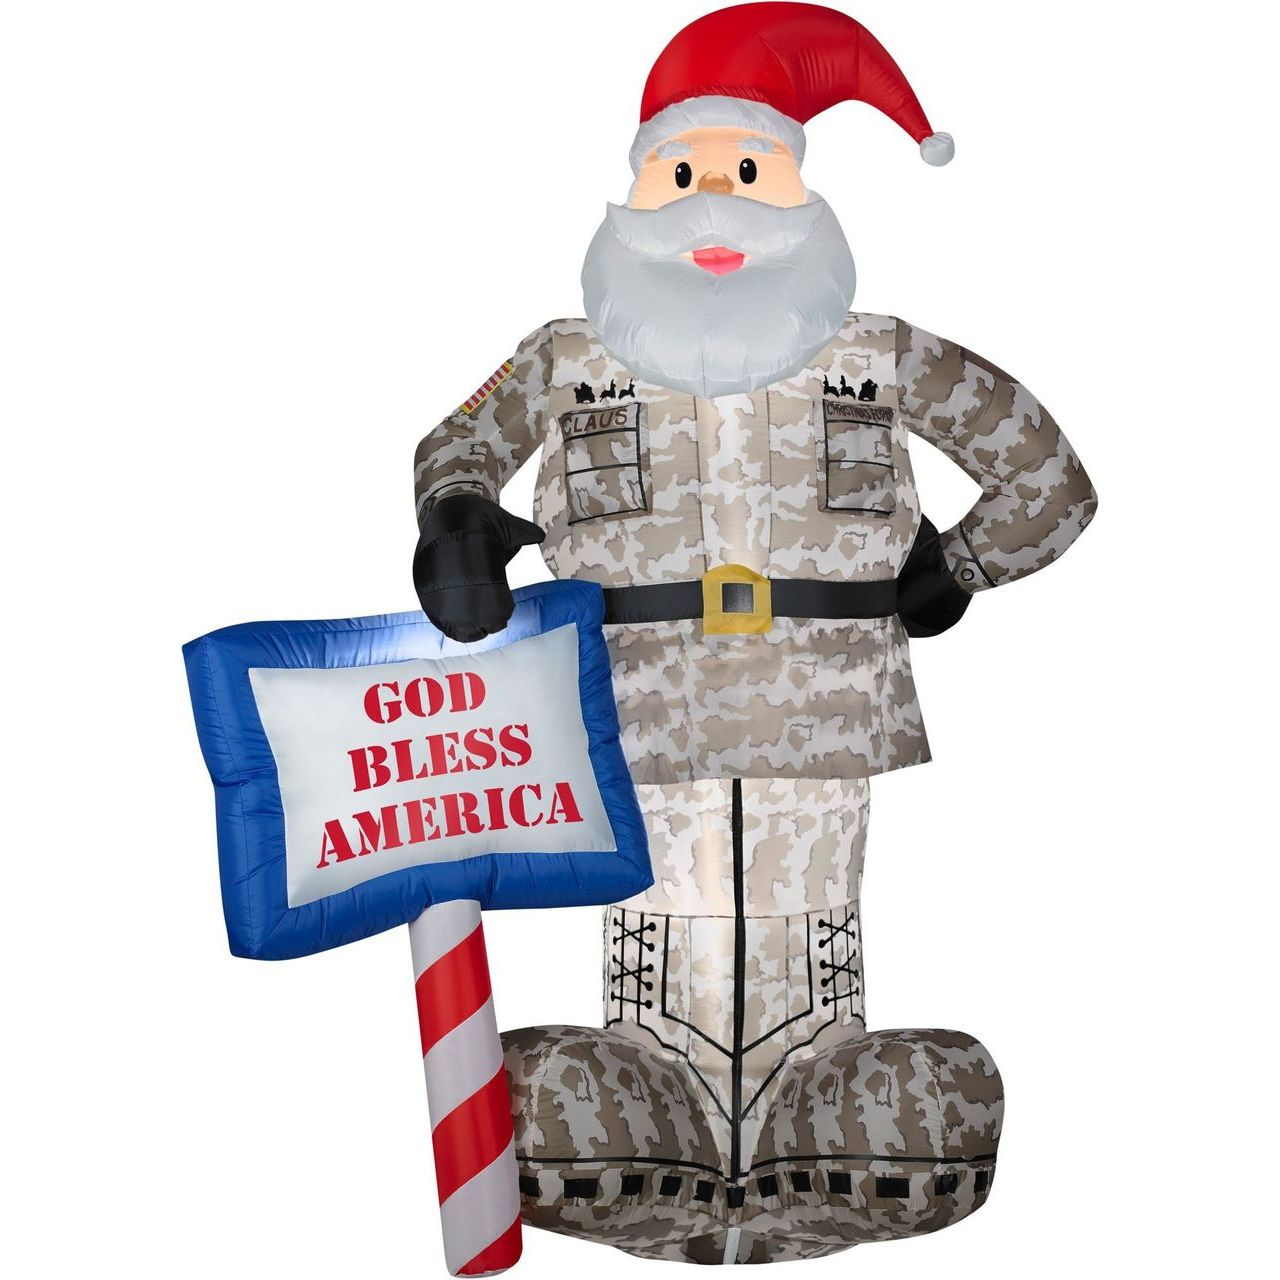 Gemmy Military Santa With God Bless America Sign Inflatable Yard Decor